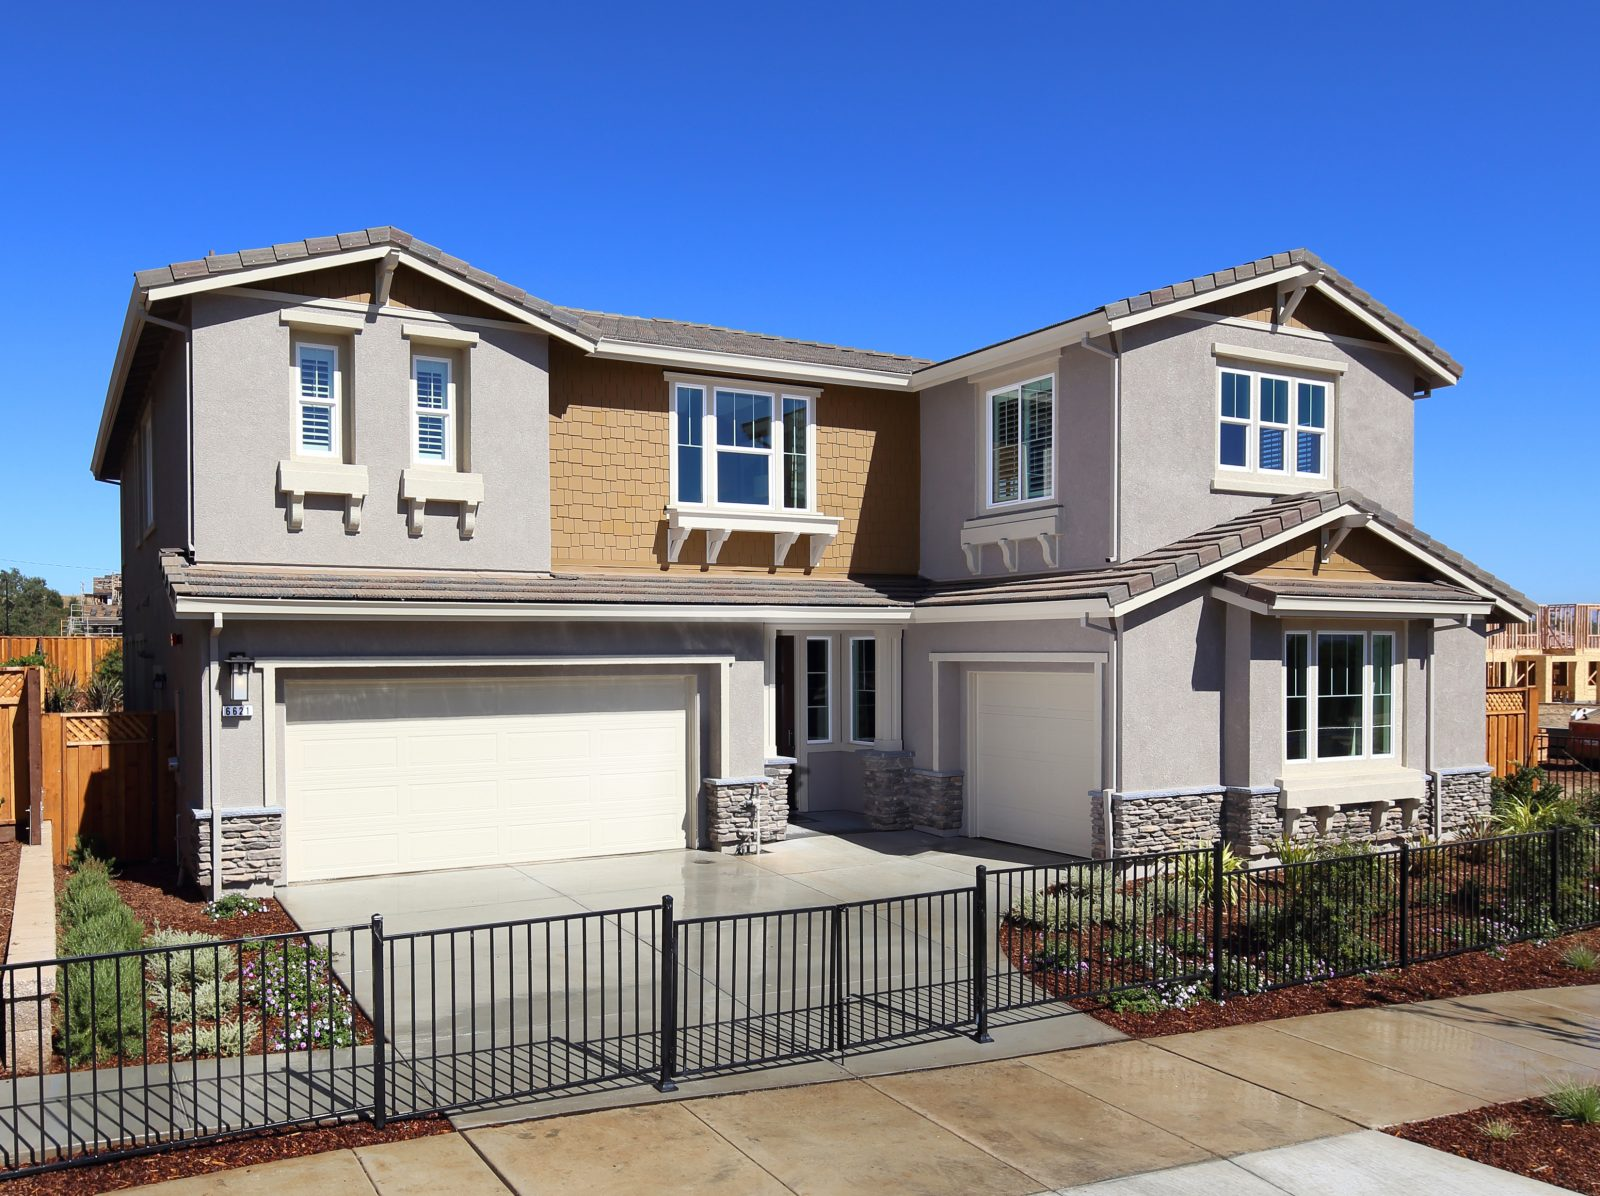 New Home Exterior | Mataro in Gilroy, CA | Brookfield Residential